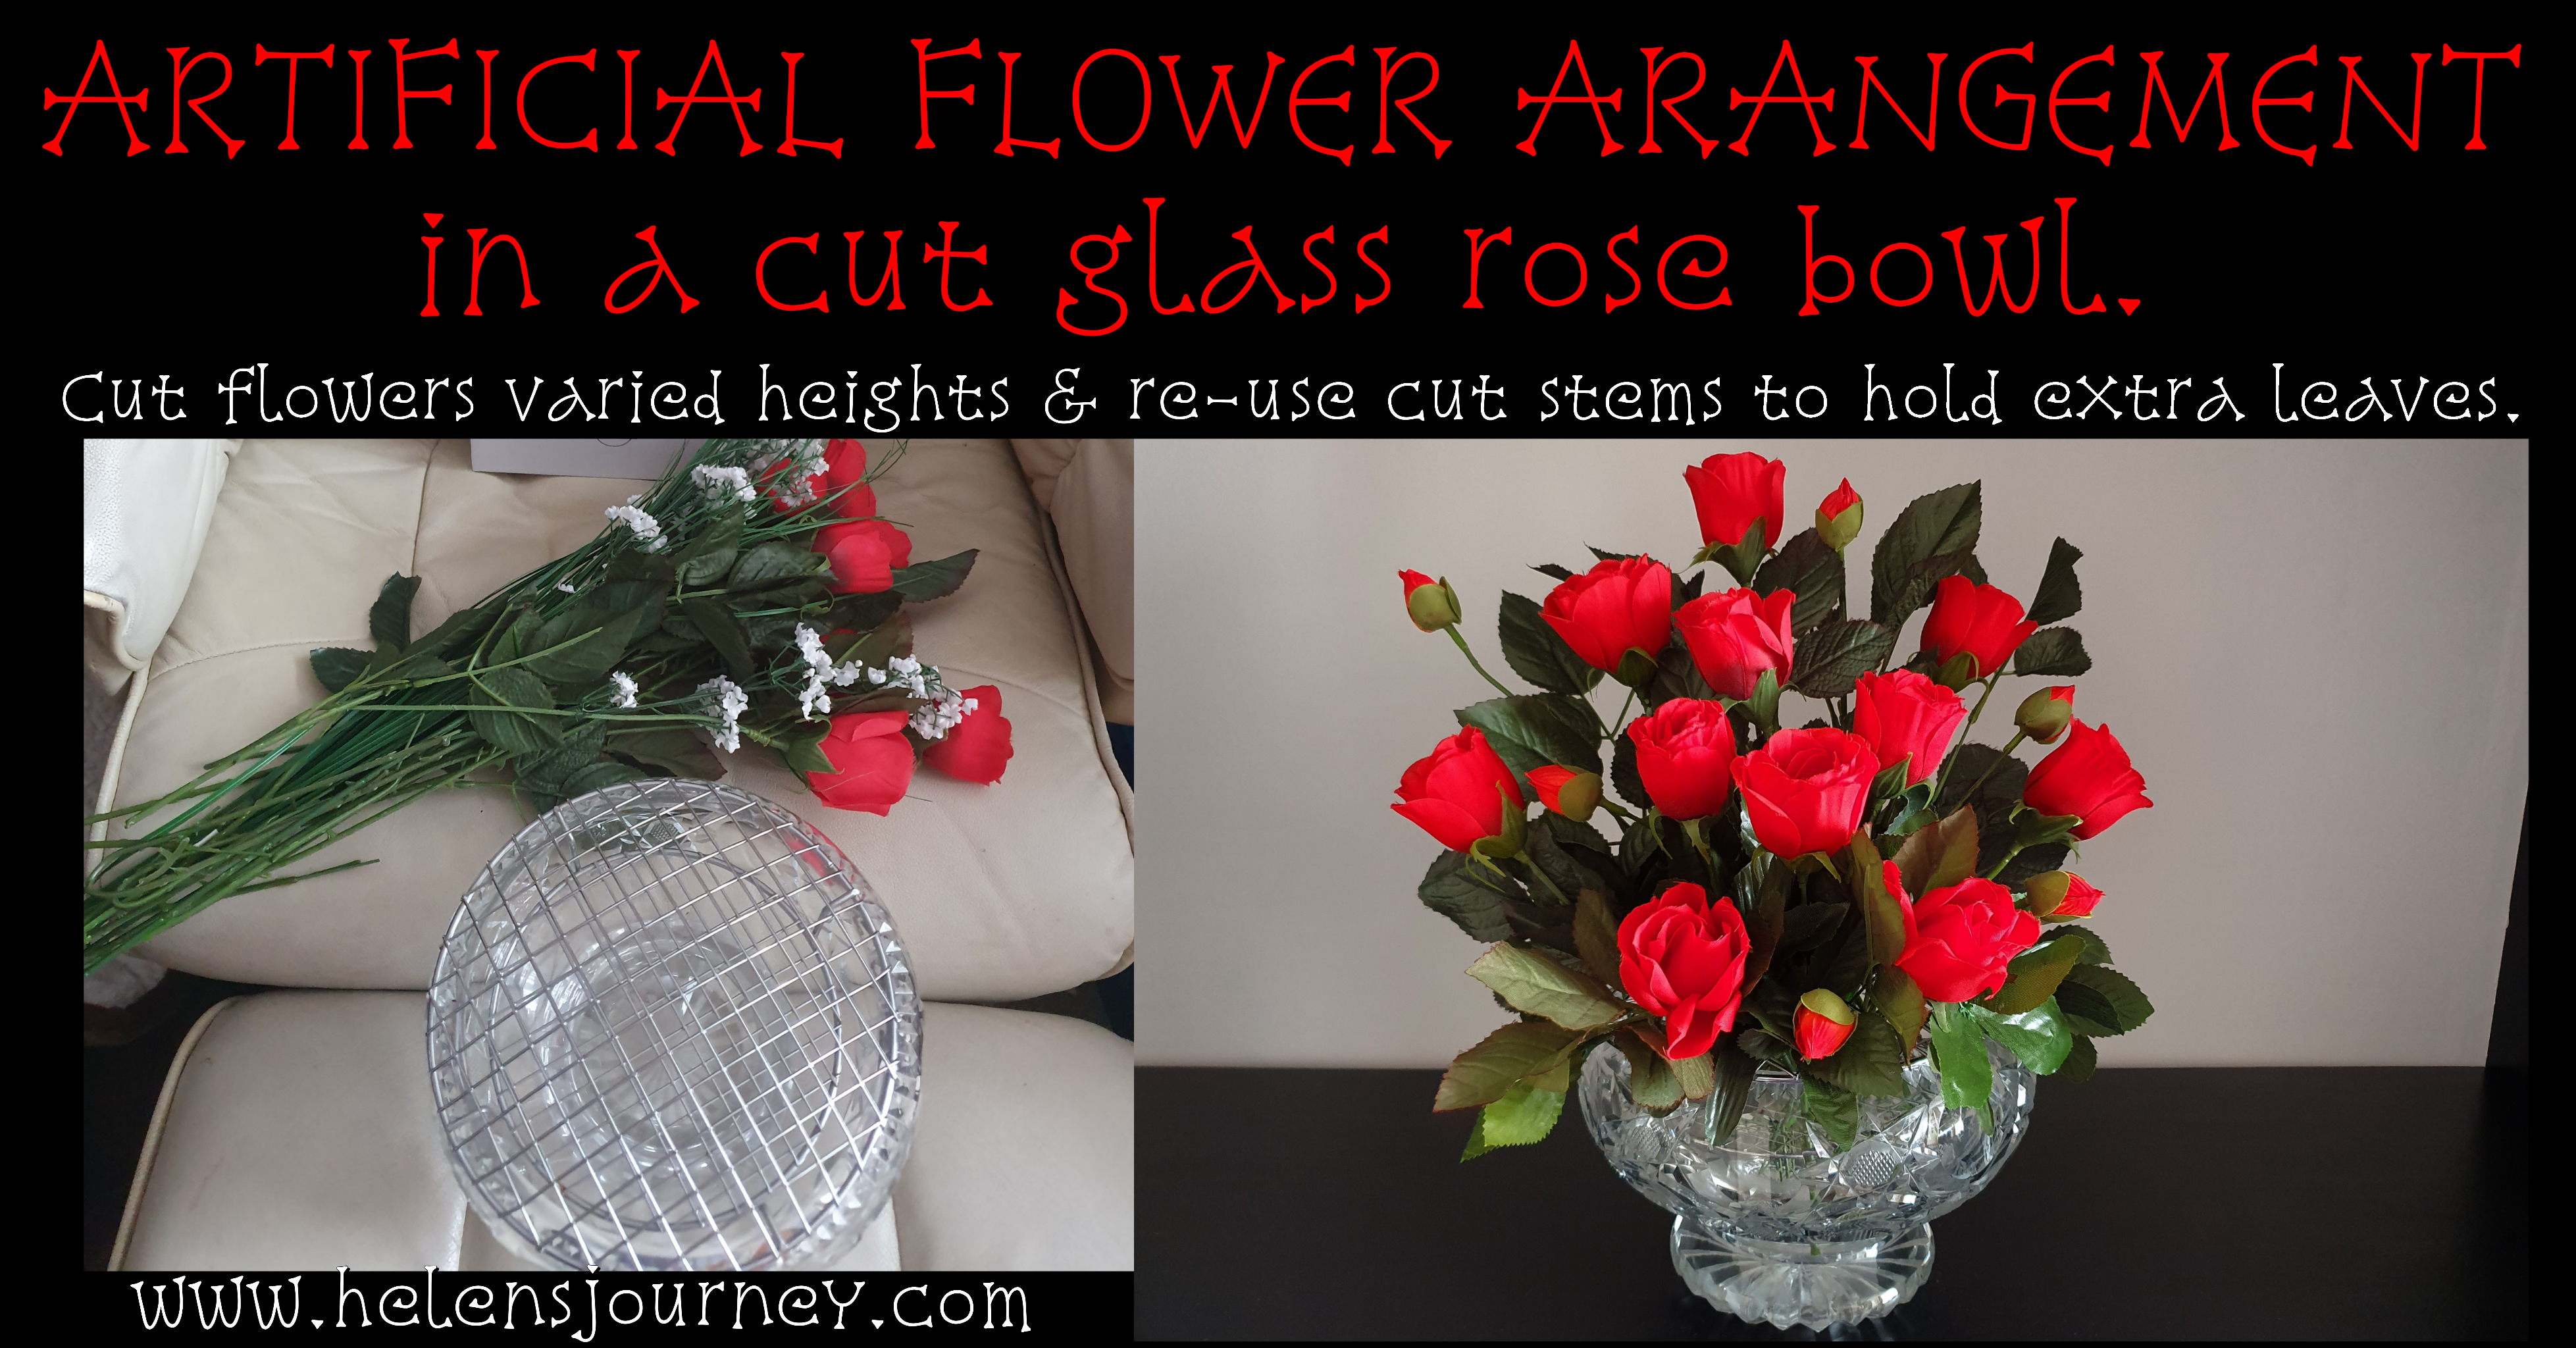 Diy Artificial Flower Arranging Tutorial Bouquet Of Red Roses In A Cut Glass Rose Bowl Helen S Journey